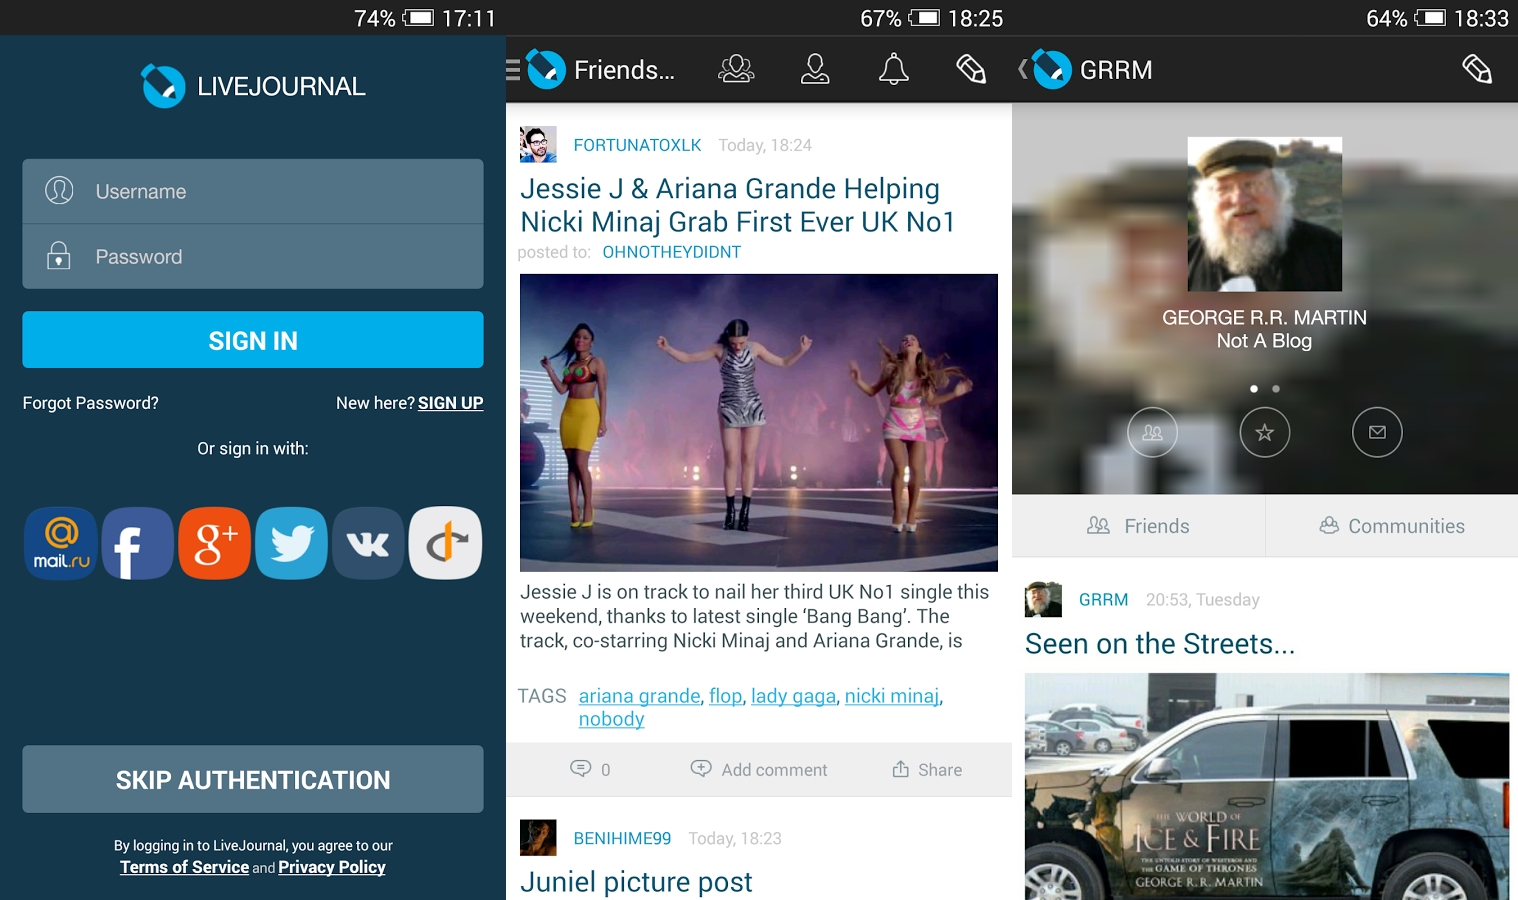 LiveJournal for Android